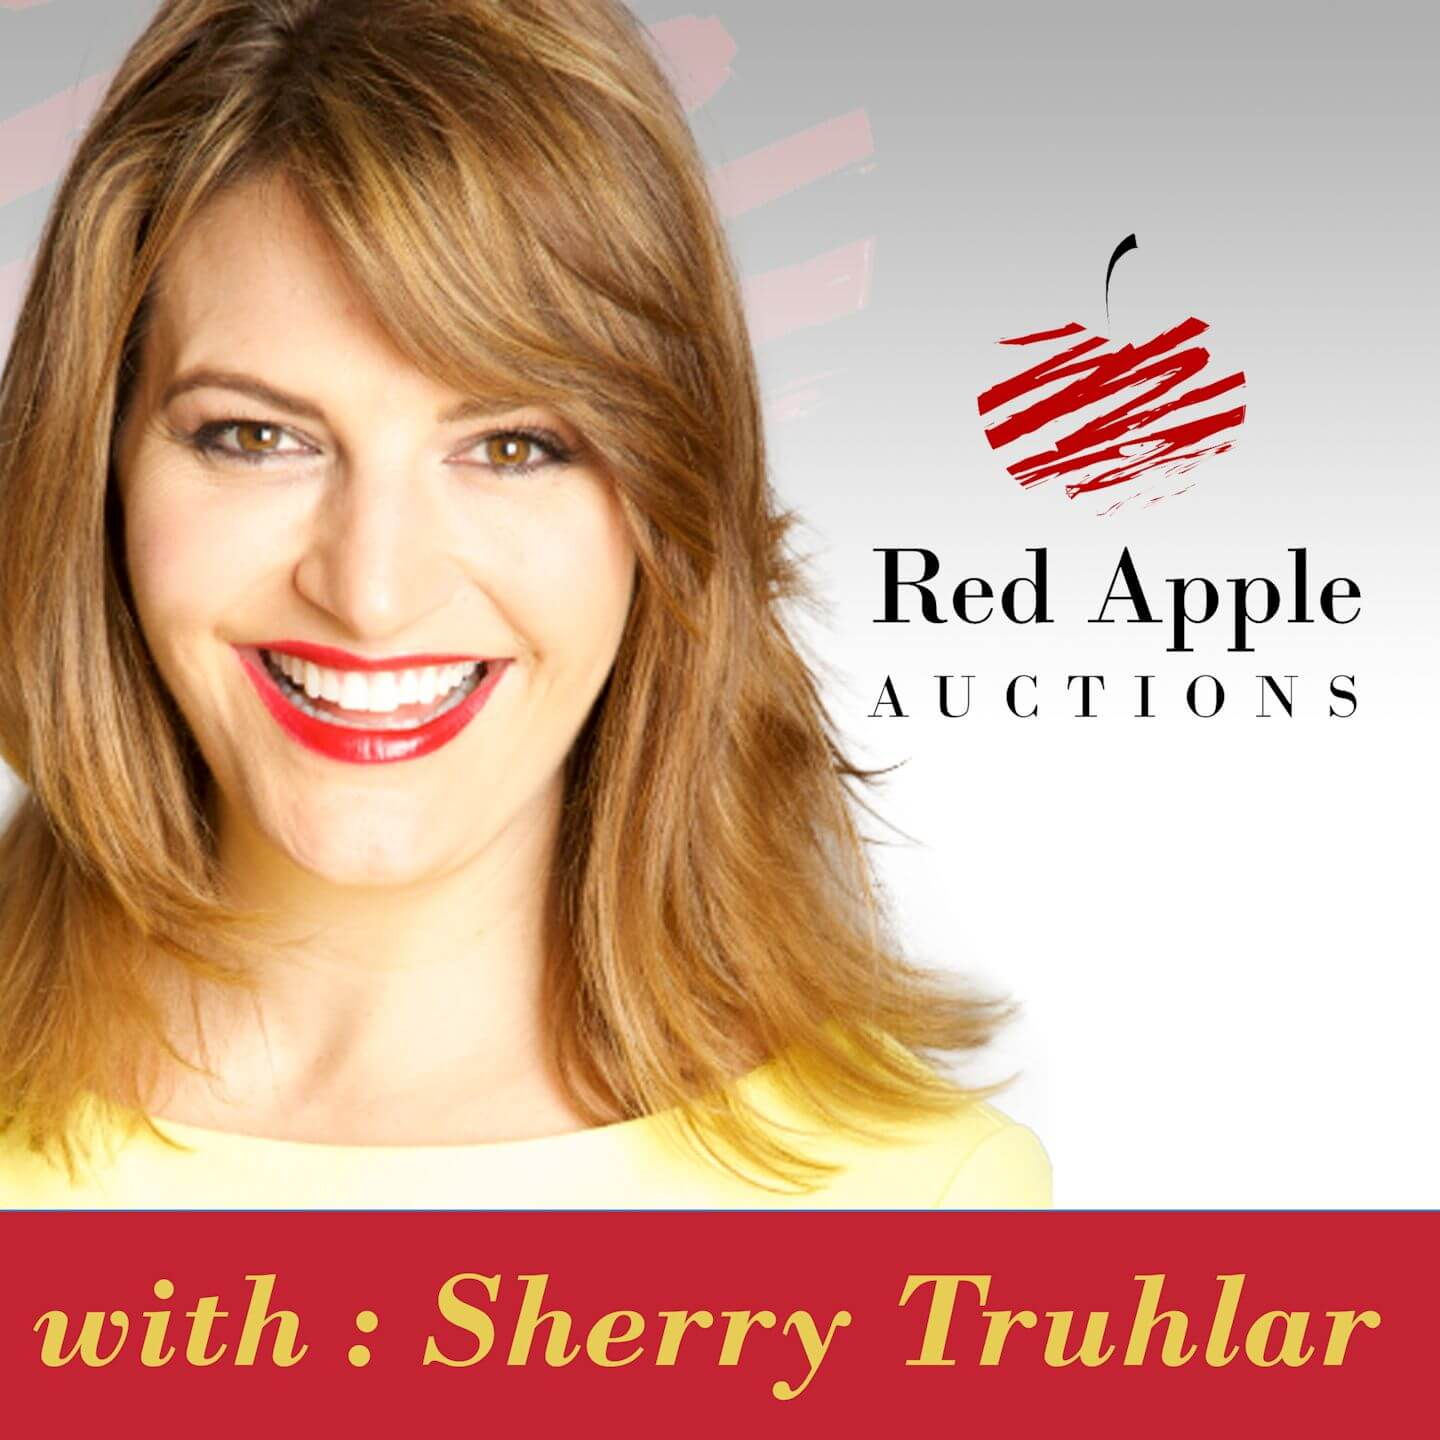 School Auctions, Benefit Auctions, Charity Auctioneer